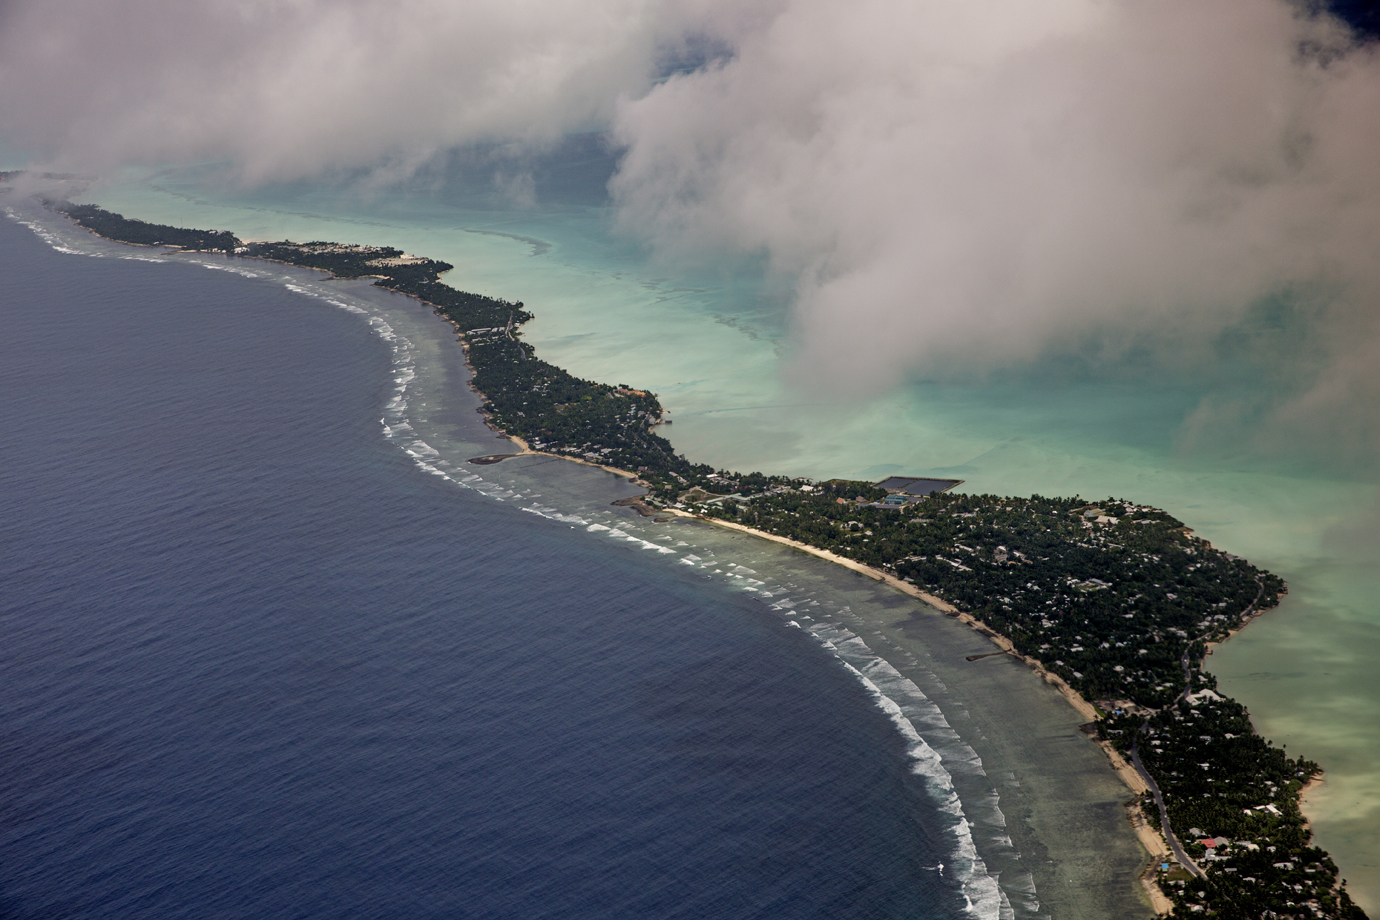 The island republic of Kiribati is the first nation to be expected to sink by elevated sea levels / Central Pacific - 2015